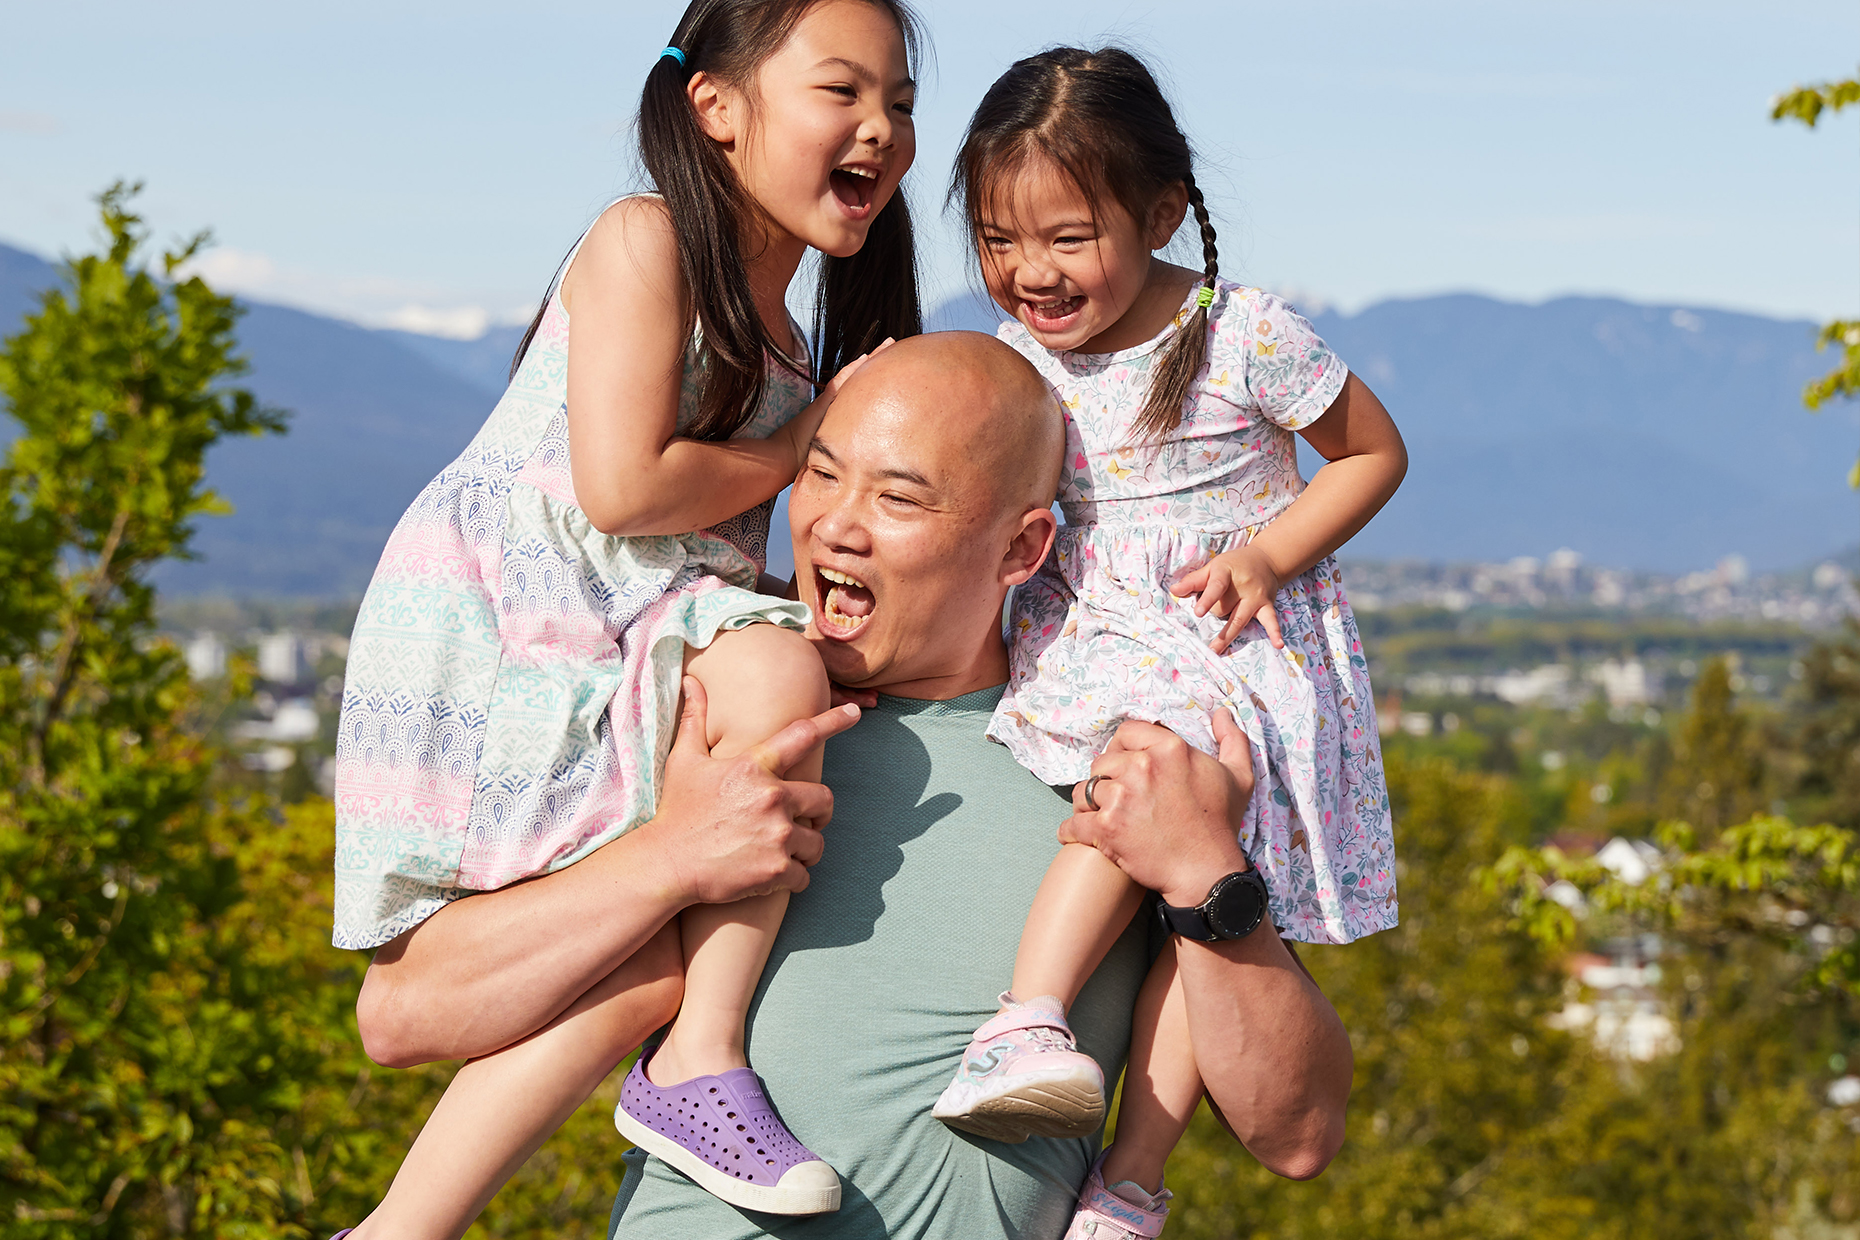 Alfred carries his two daughters on his shoulders as he plays with them in a park.